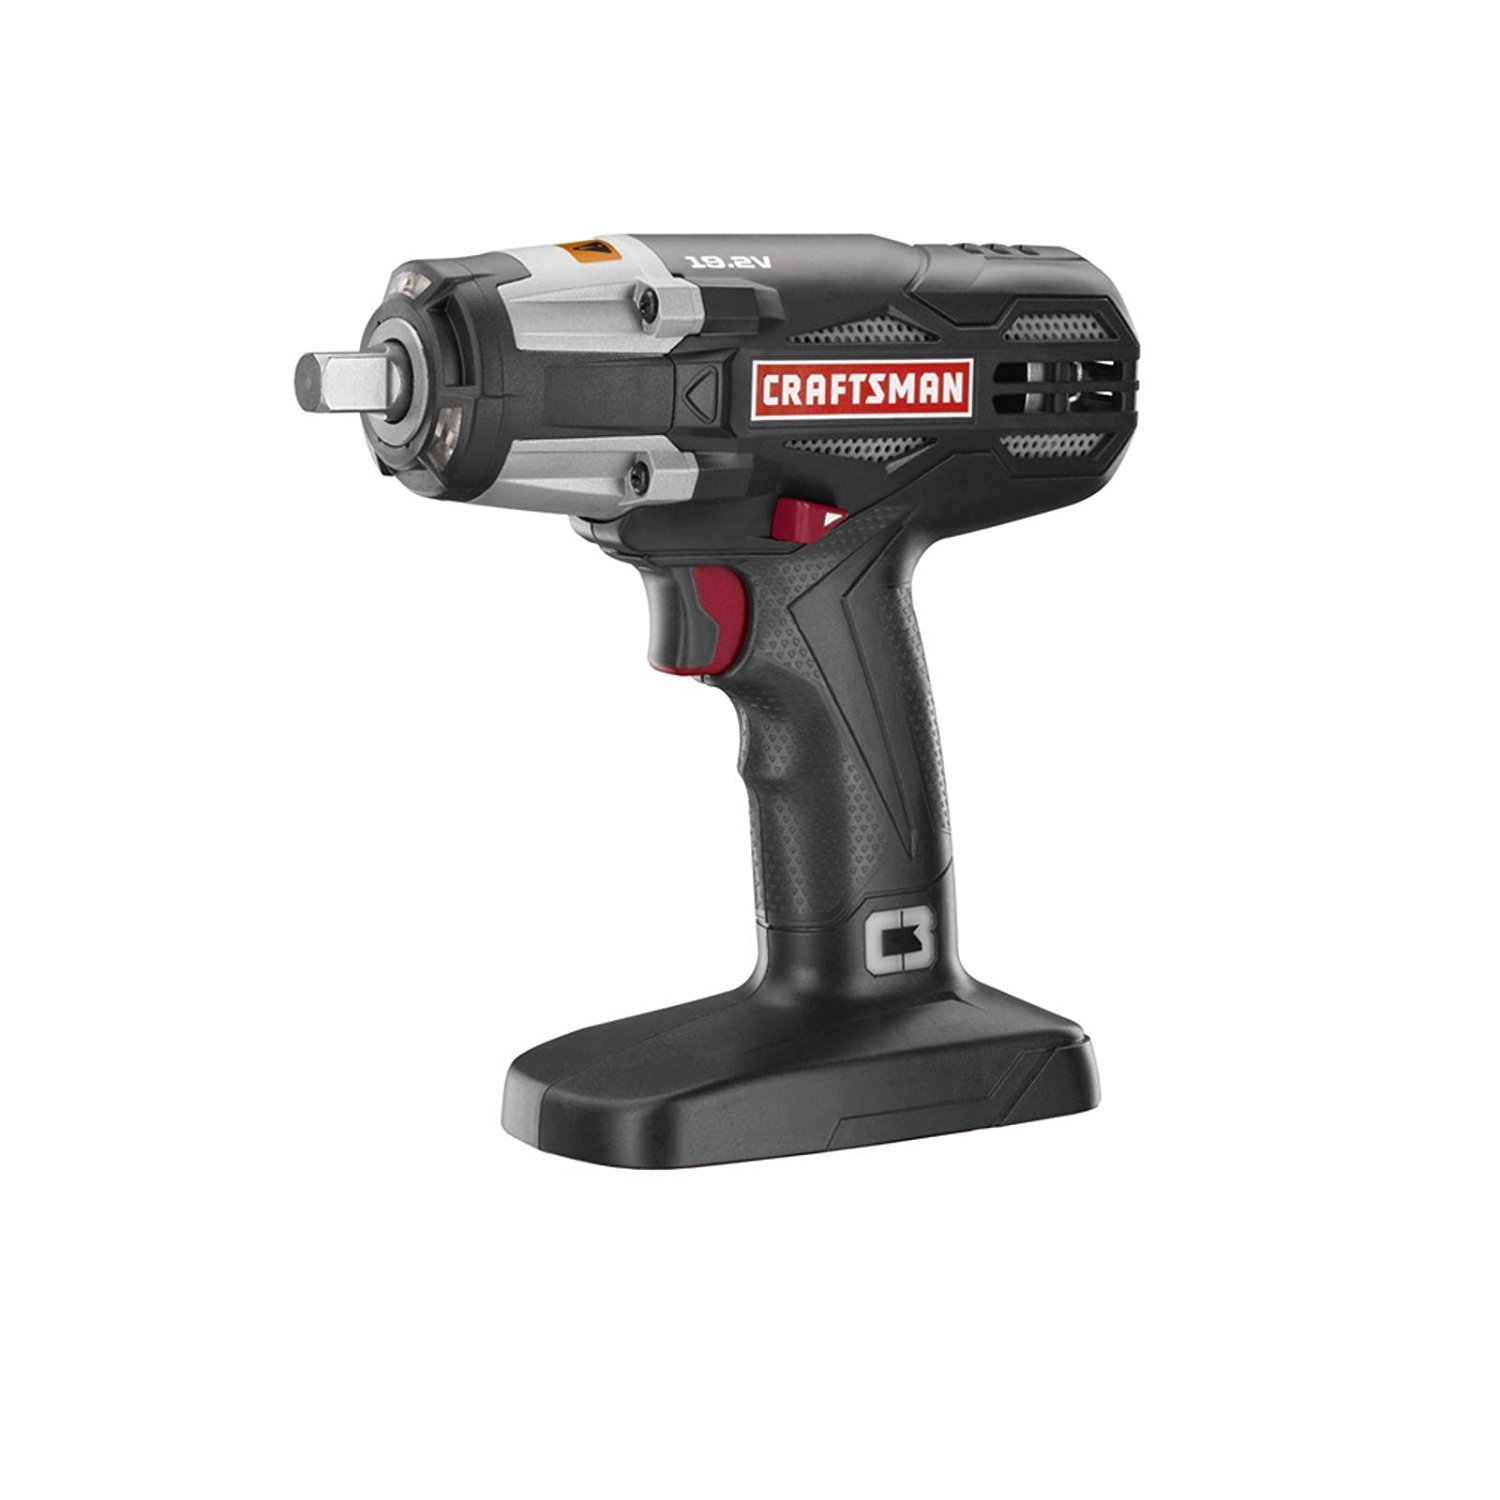 Craftsman C3 19.2 Volt 1 2 Heavy Duty Impact Wrench Tool Only – Bulk Packaged